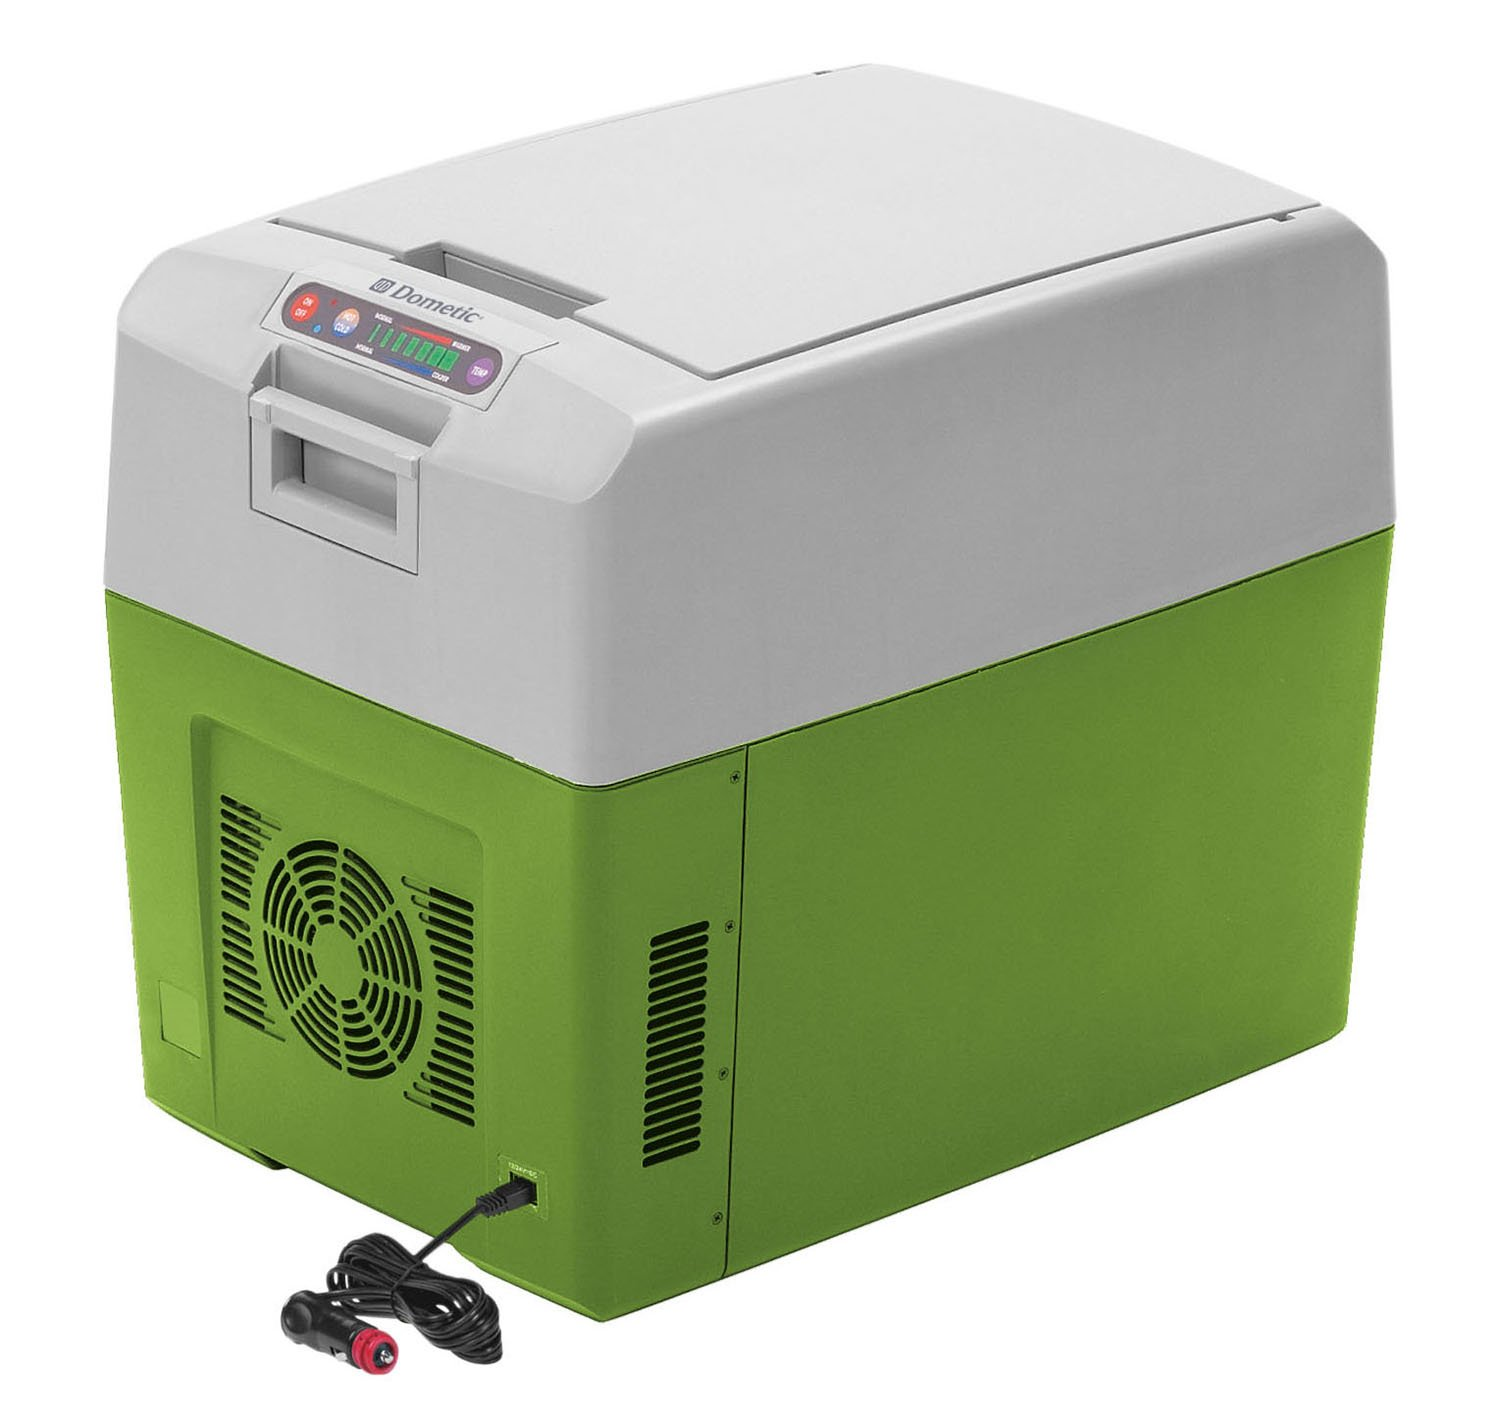 Amazon.com: Dometic TC 35US Portable Thermo Electric Cooler/Warmer 37  Quart, Gray/Green: Automotive